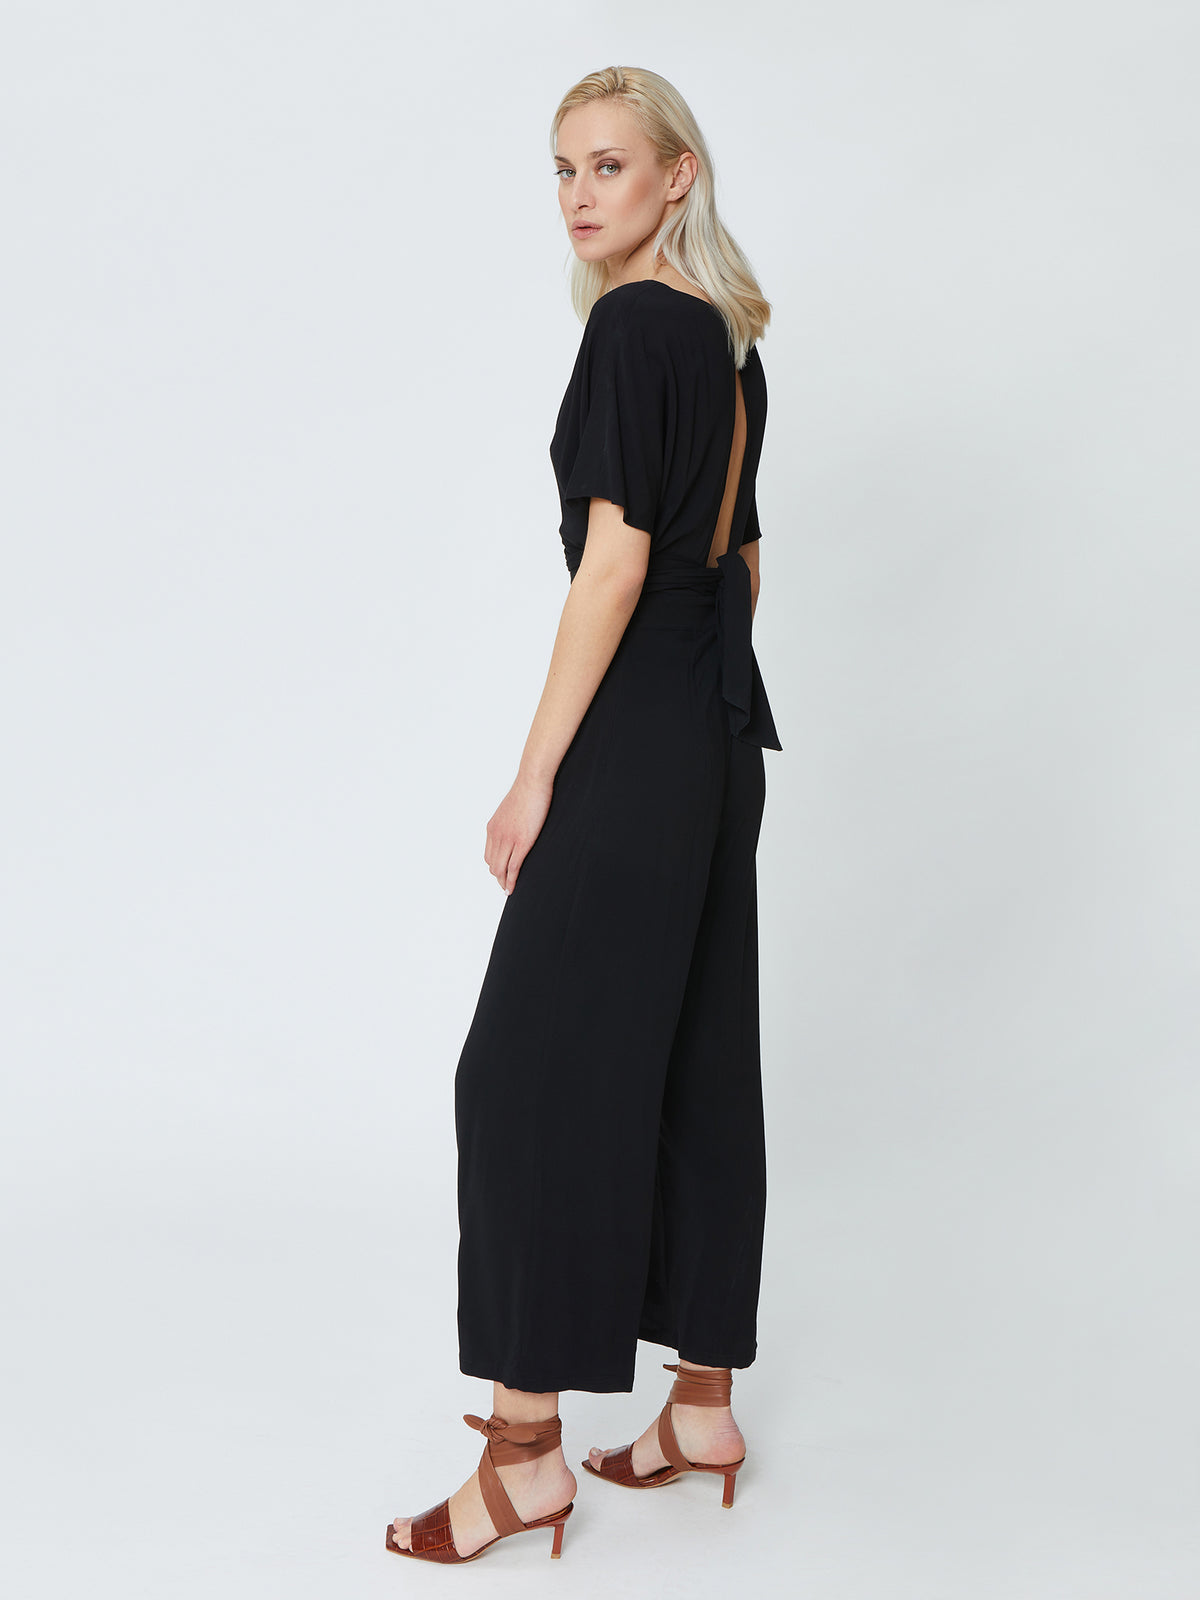 Wildwood - Peace Jumpsuit - Black